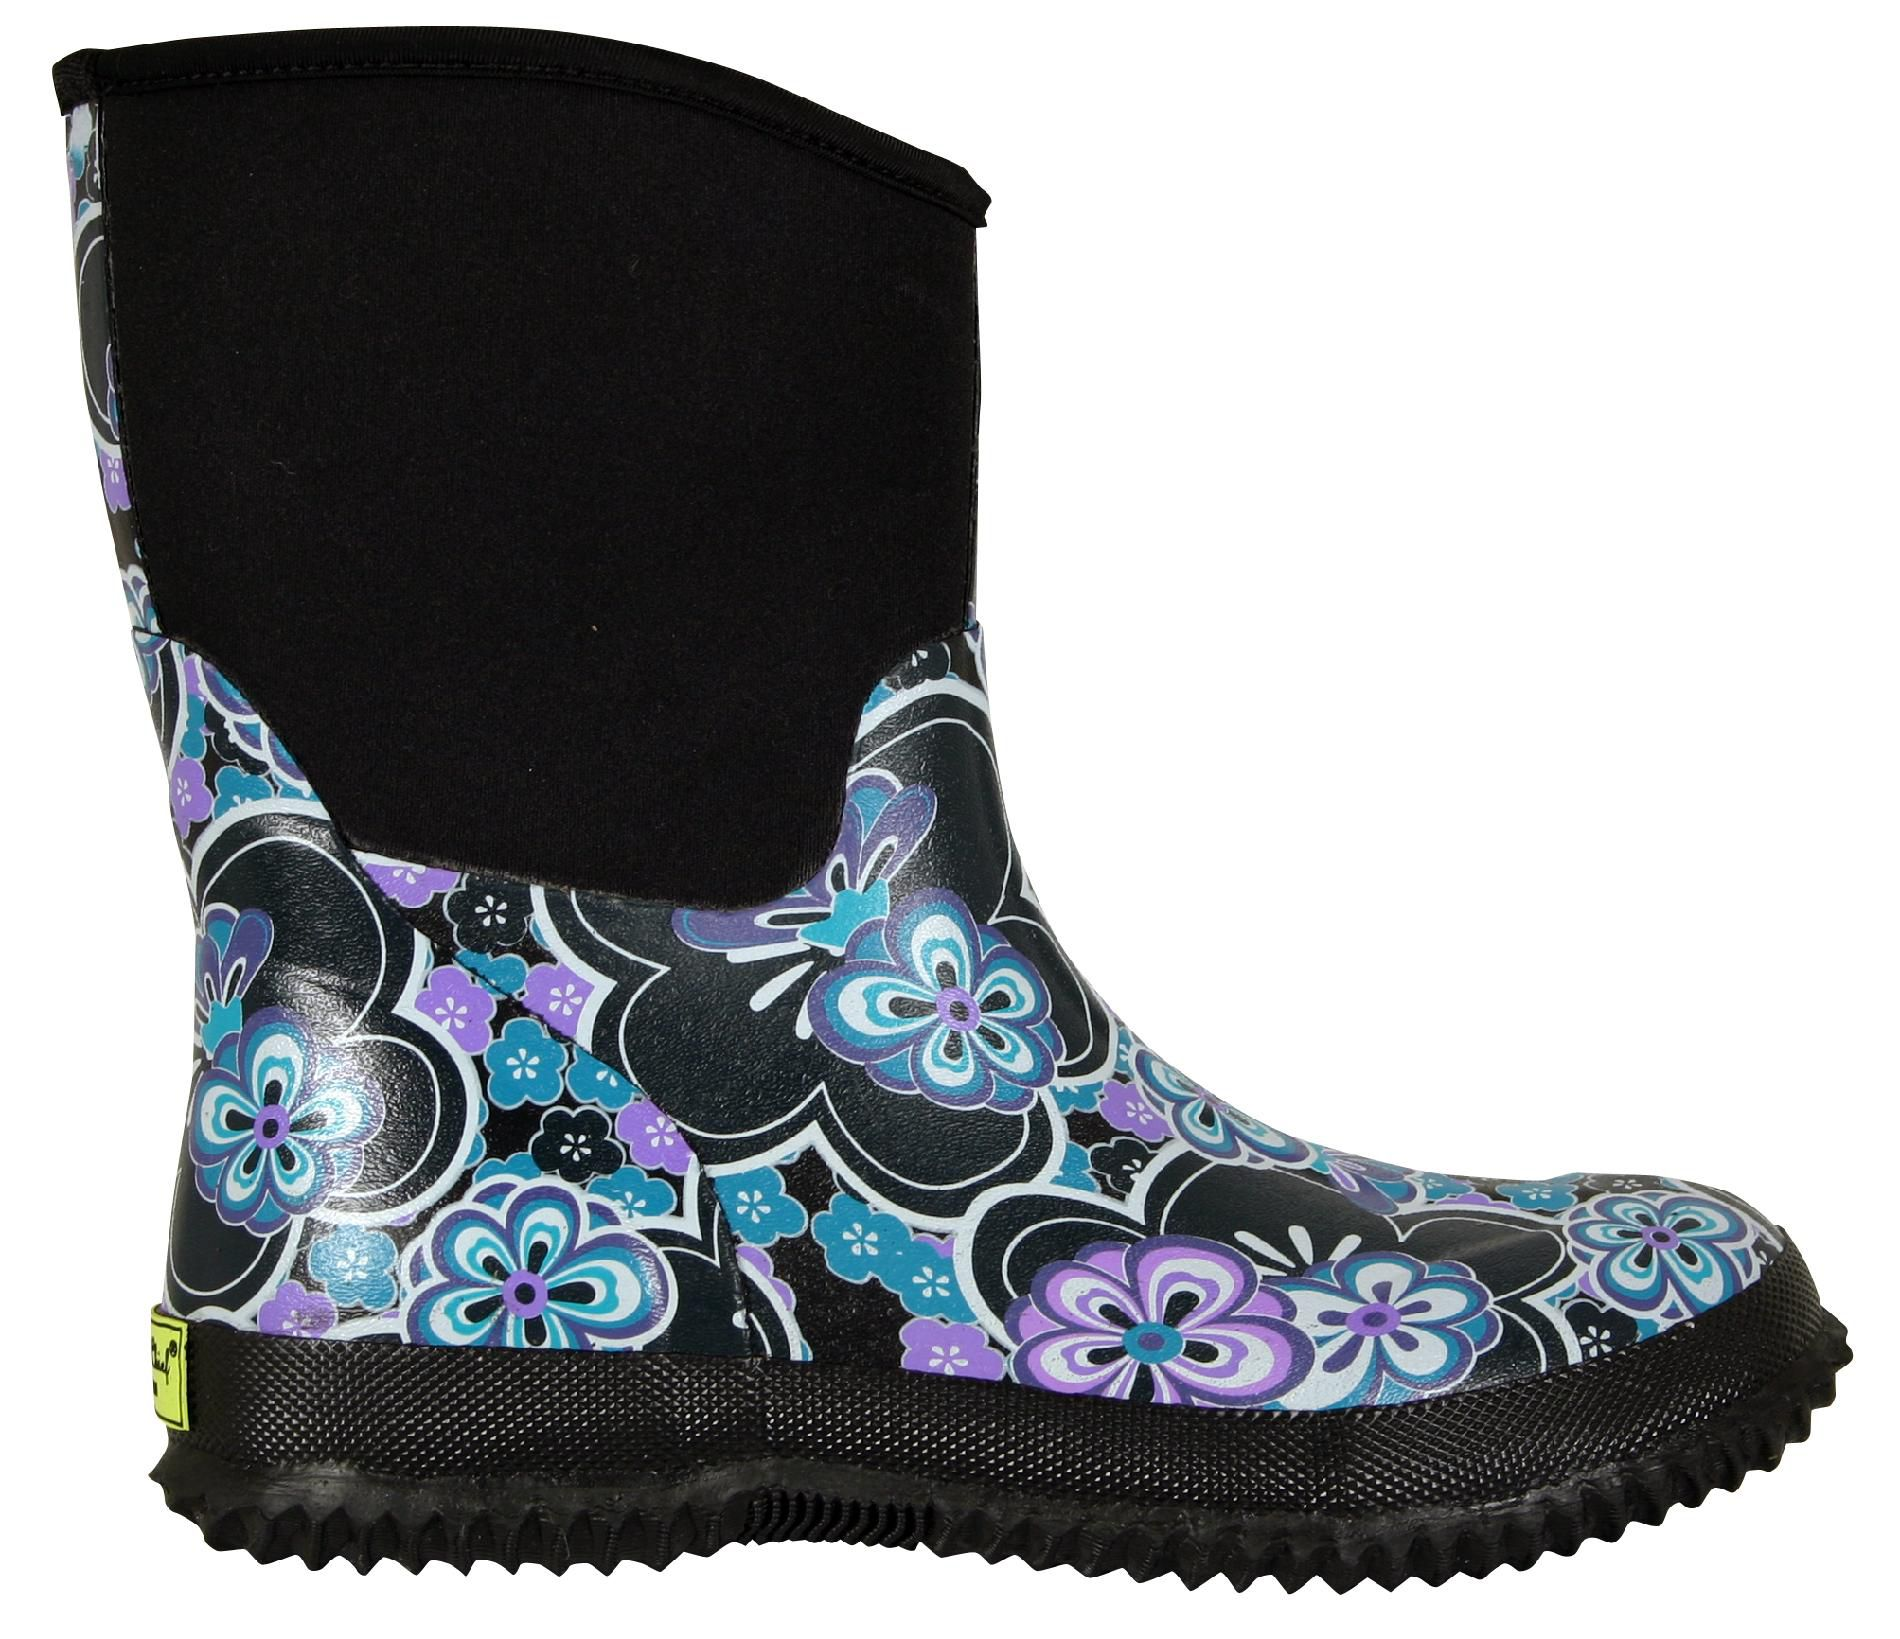 Women's Neoprene Boot Floral Breezy - Blue